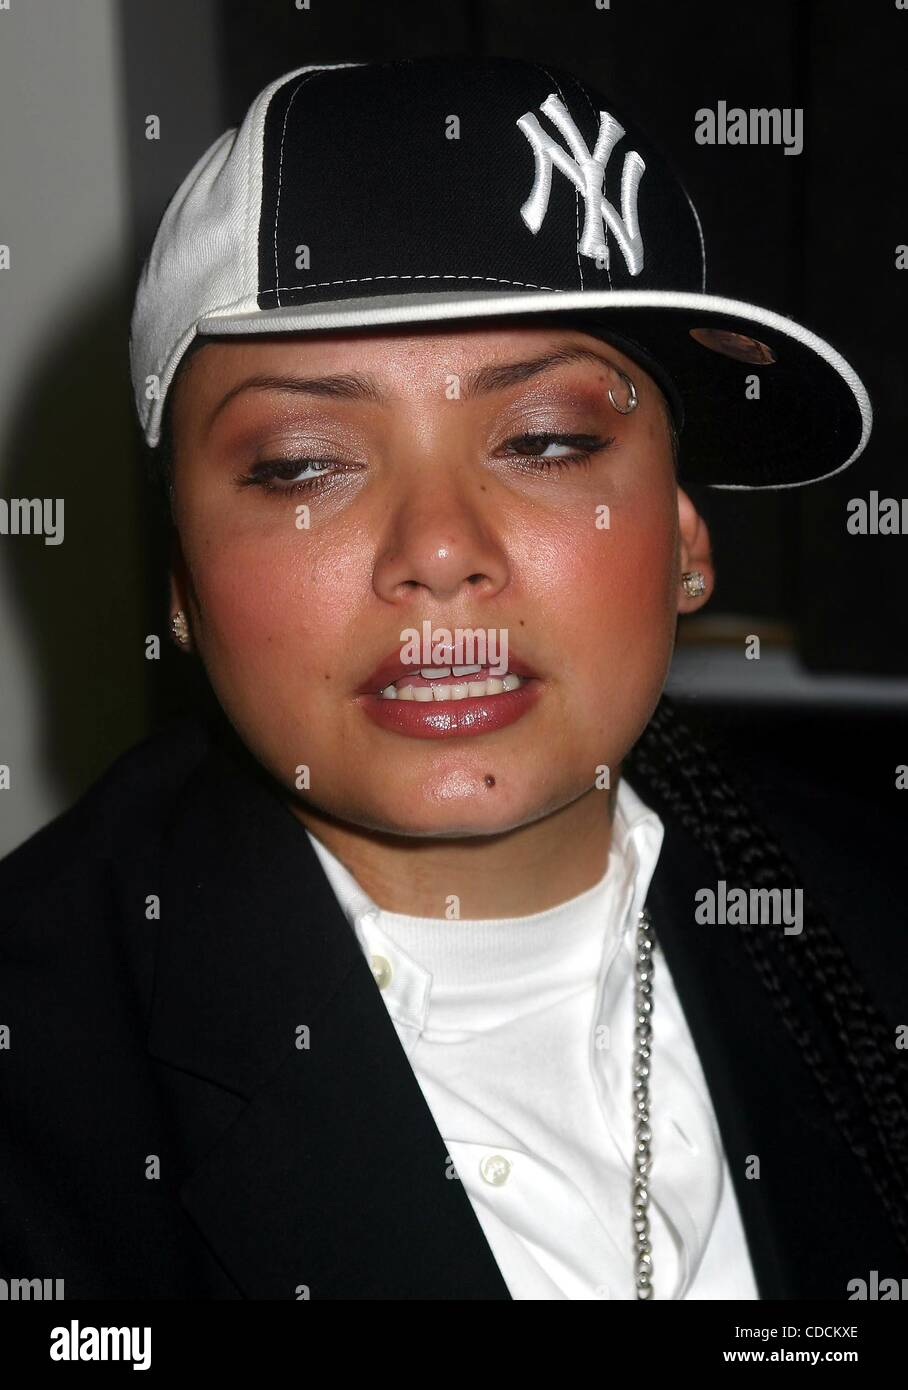 VIRGIN RECORDS NEWLY SIGNED ARTIST AMANDA PEREZ HOLDS PRESS LUNCHEON AT  VIRGIN'S 5TH AVE OFFICE 06/08/2004. / 2004.(Credit Image: © Mitchell  Levy/Globe ...